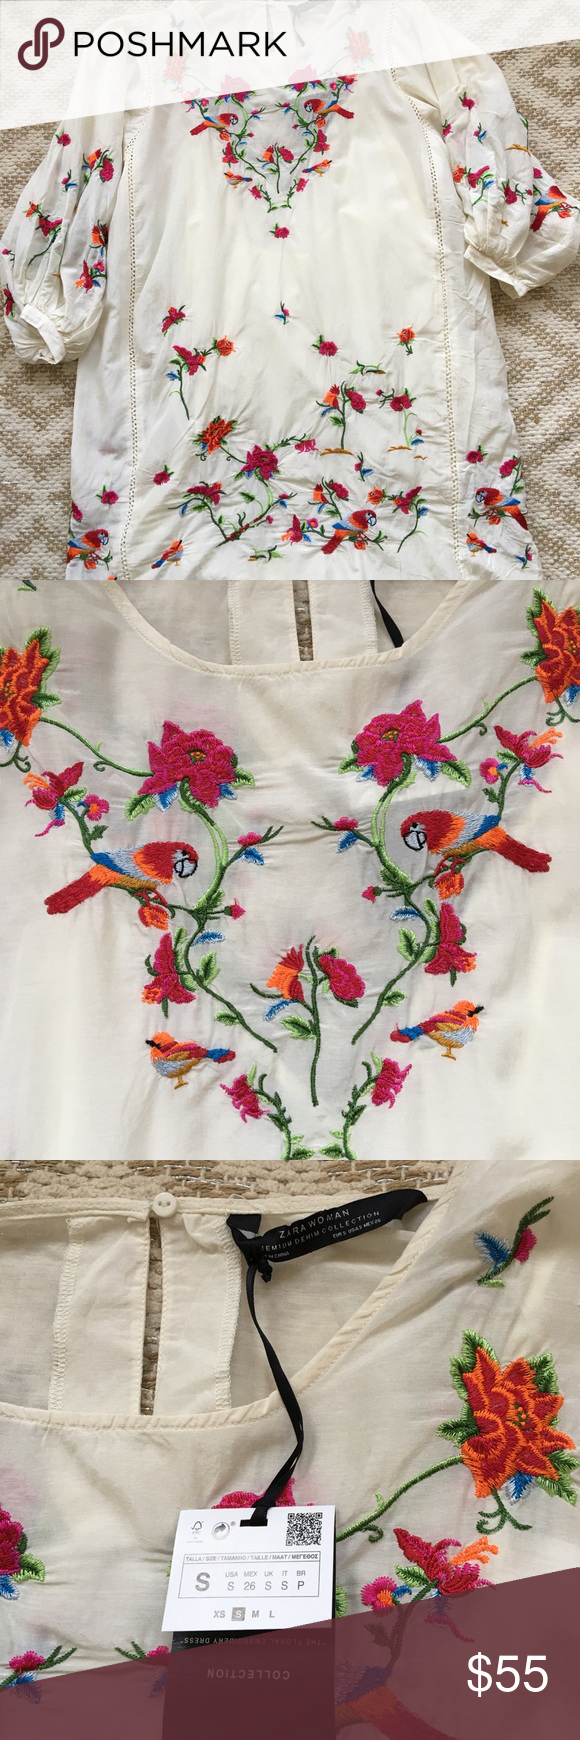 51c48926 New Zara Parrot Floral Embroidered Mini Dress Sm This dress is the cutest.  Has parrots